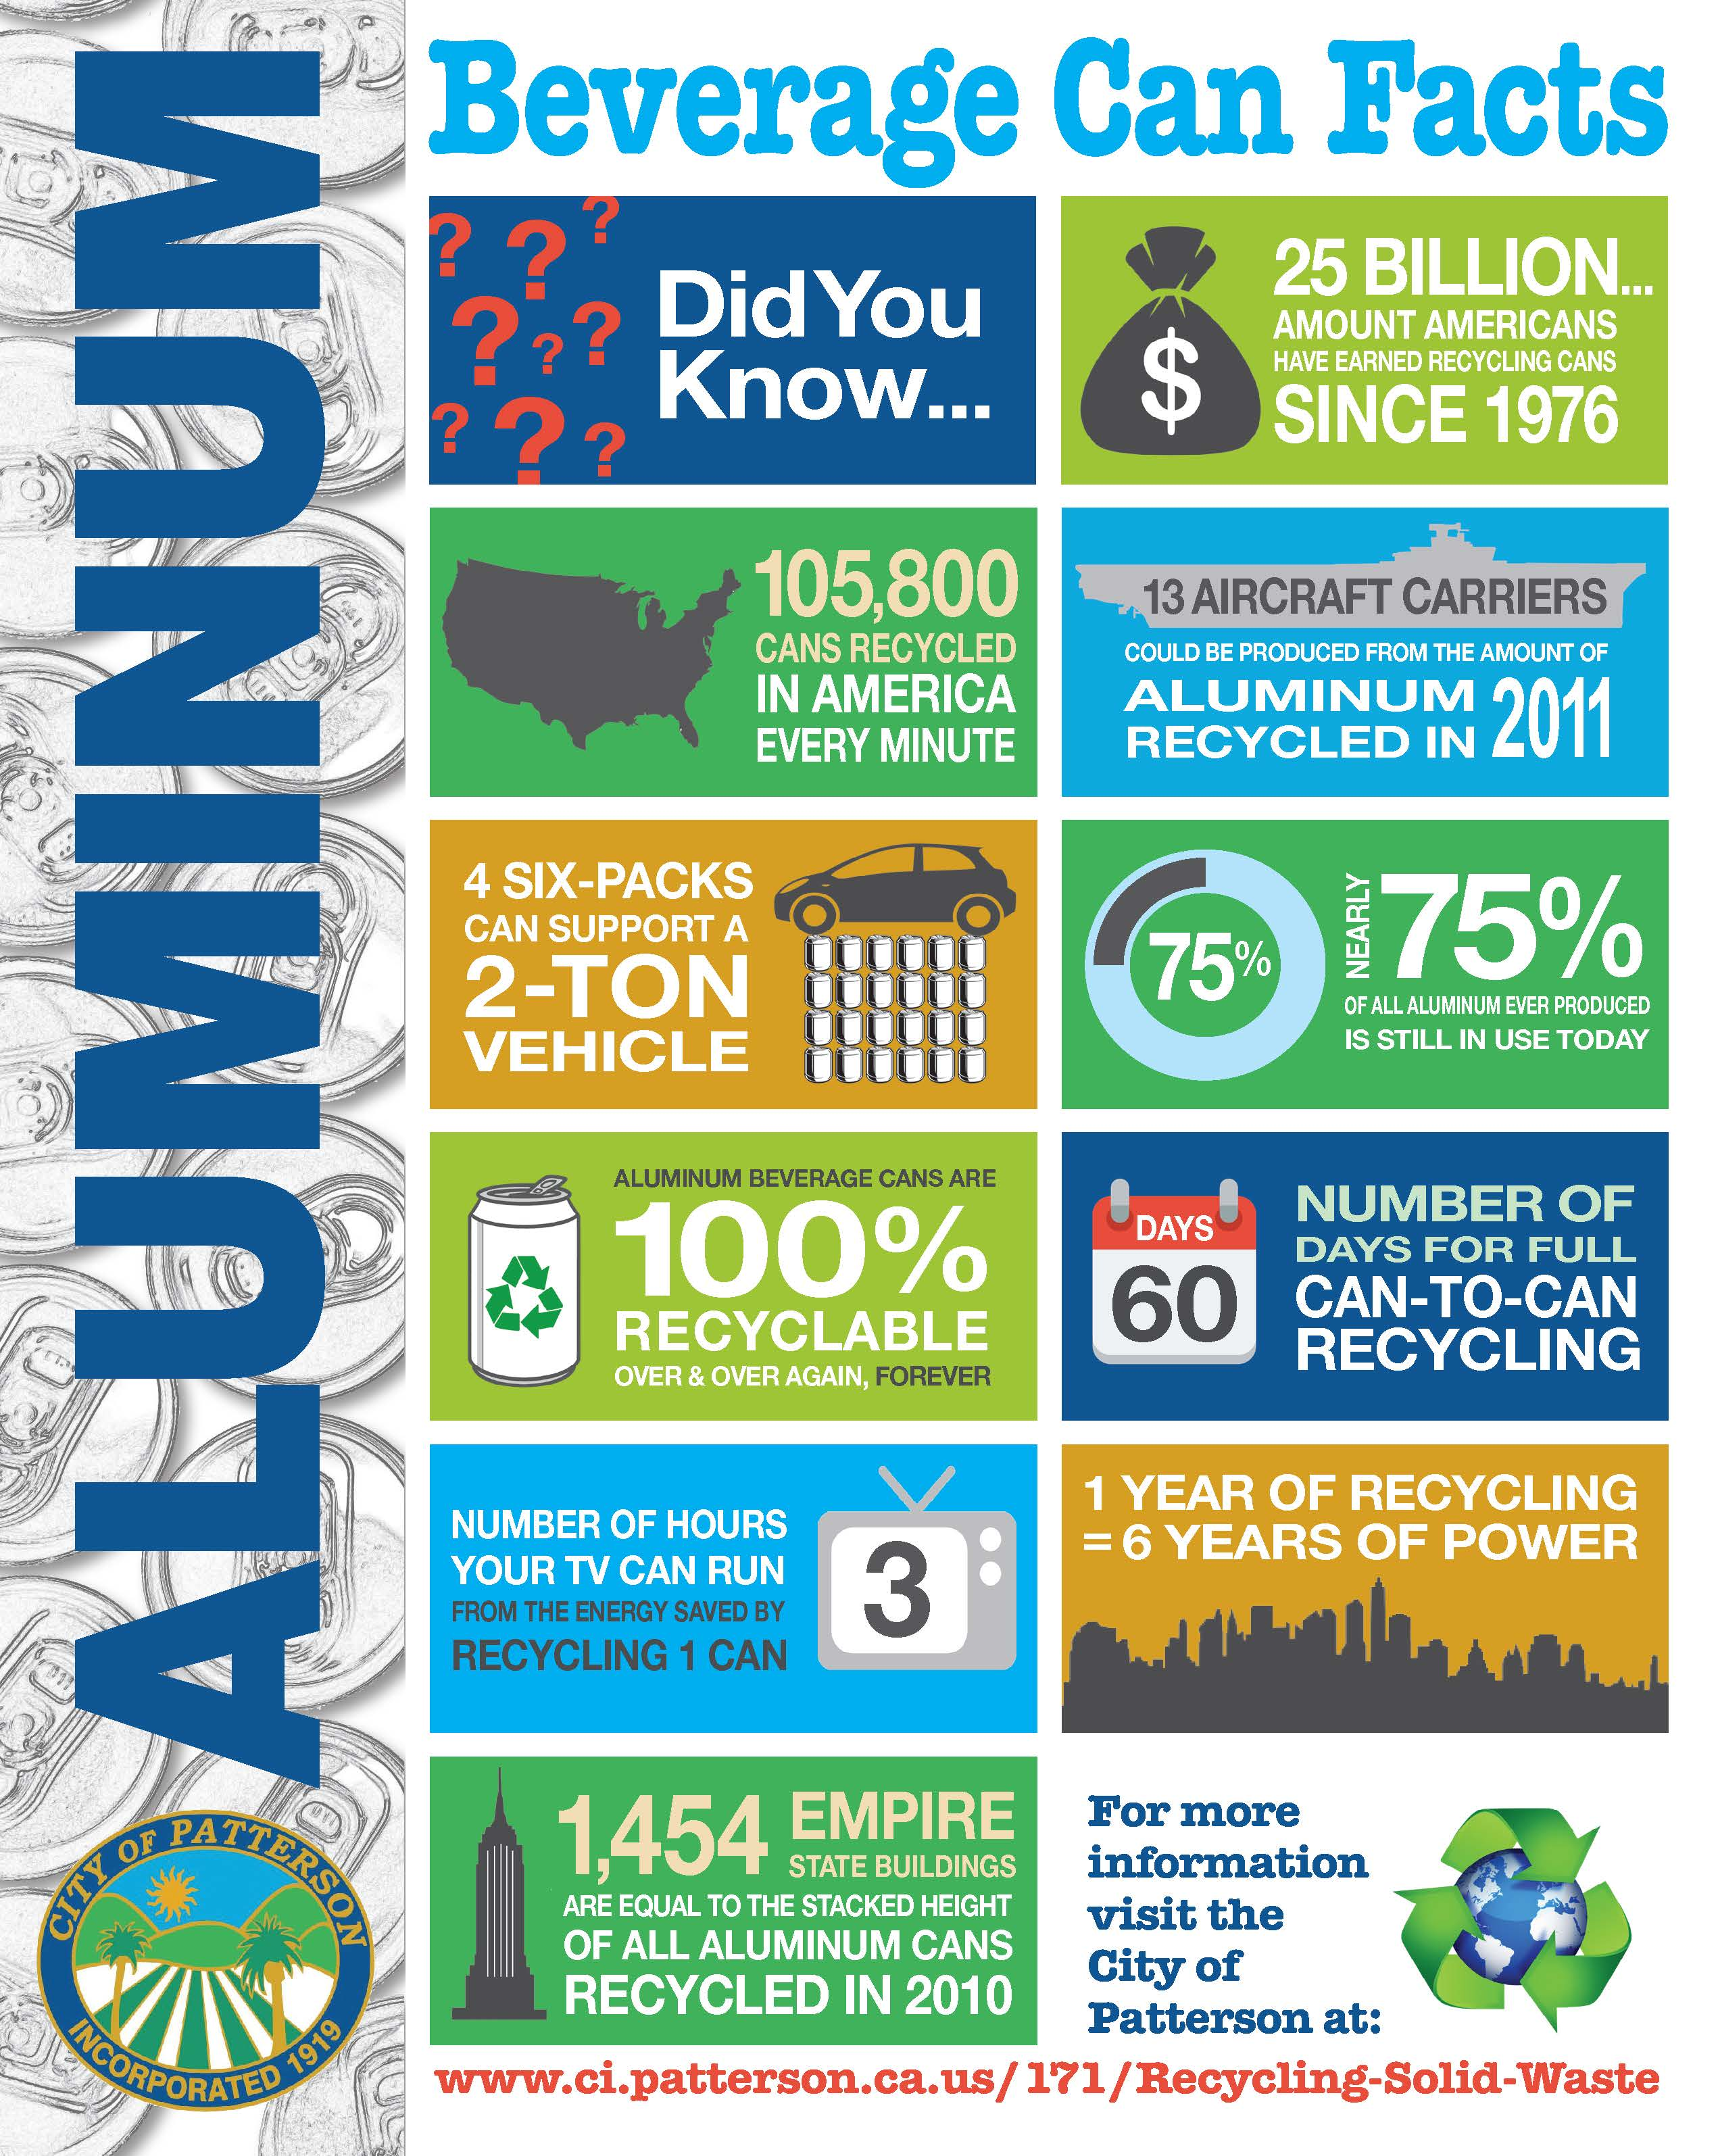 City of Patterson Aluminum can facts